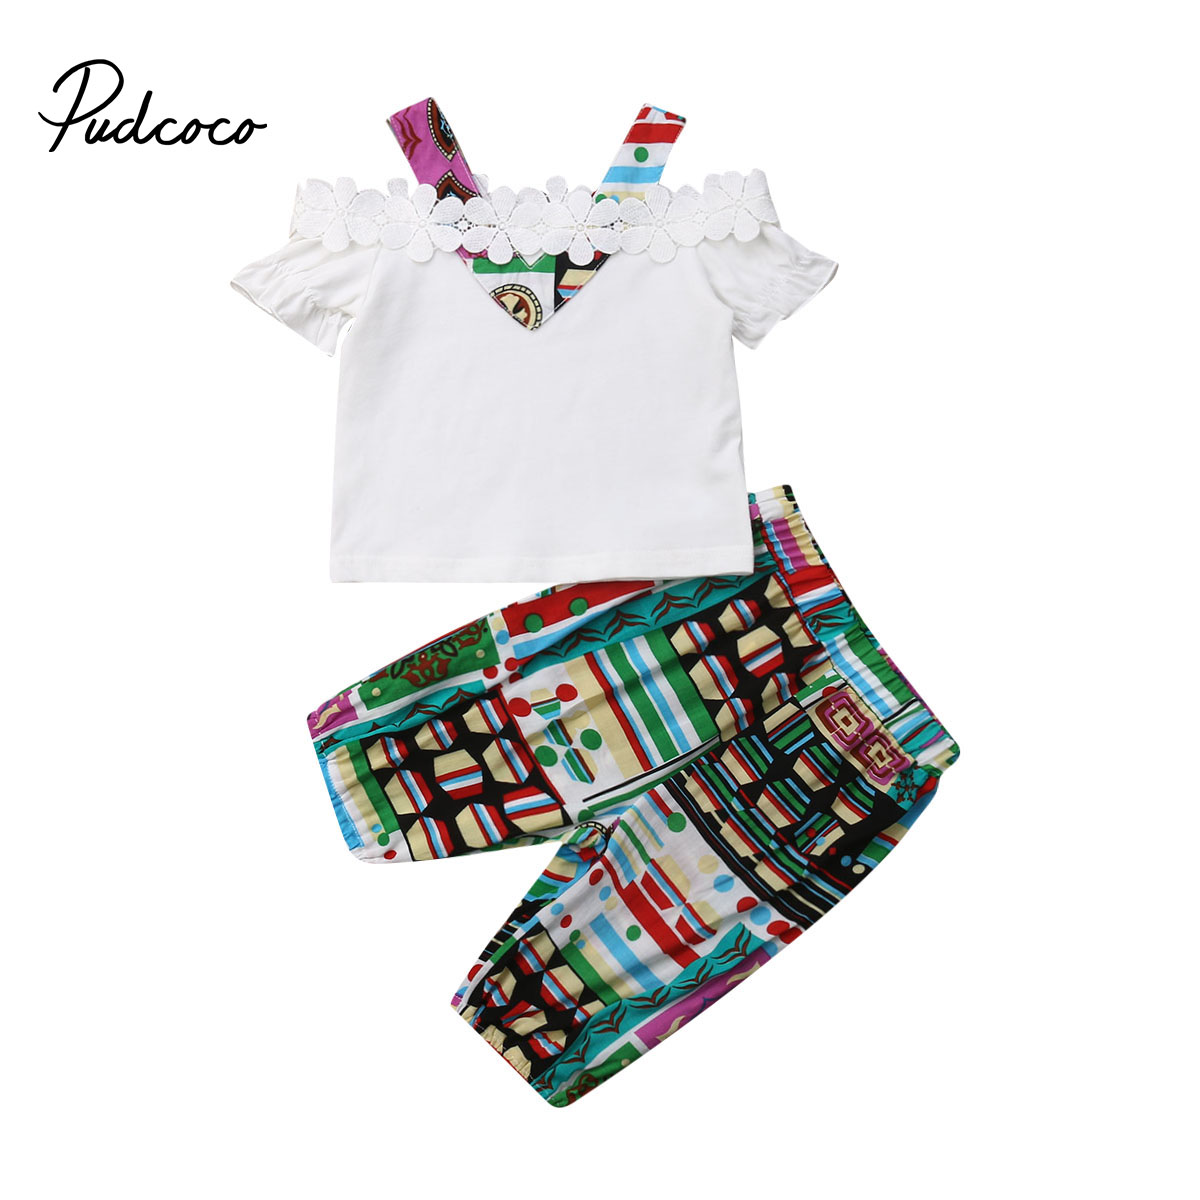 Toddler Kids Baby Girls Cotton Tops Blouse Flower Print Pants Outfits Clothes US